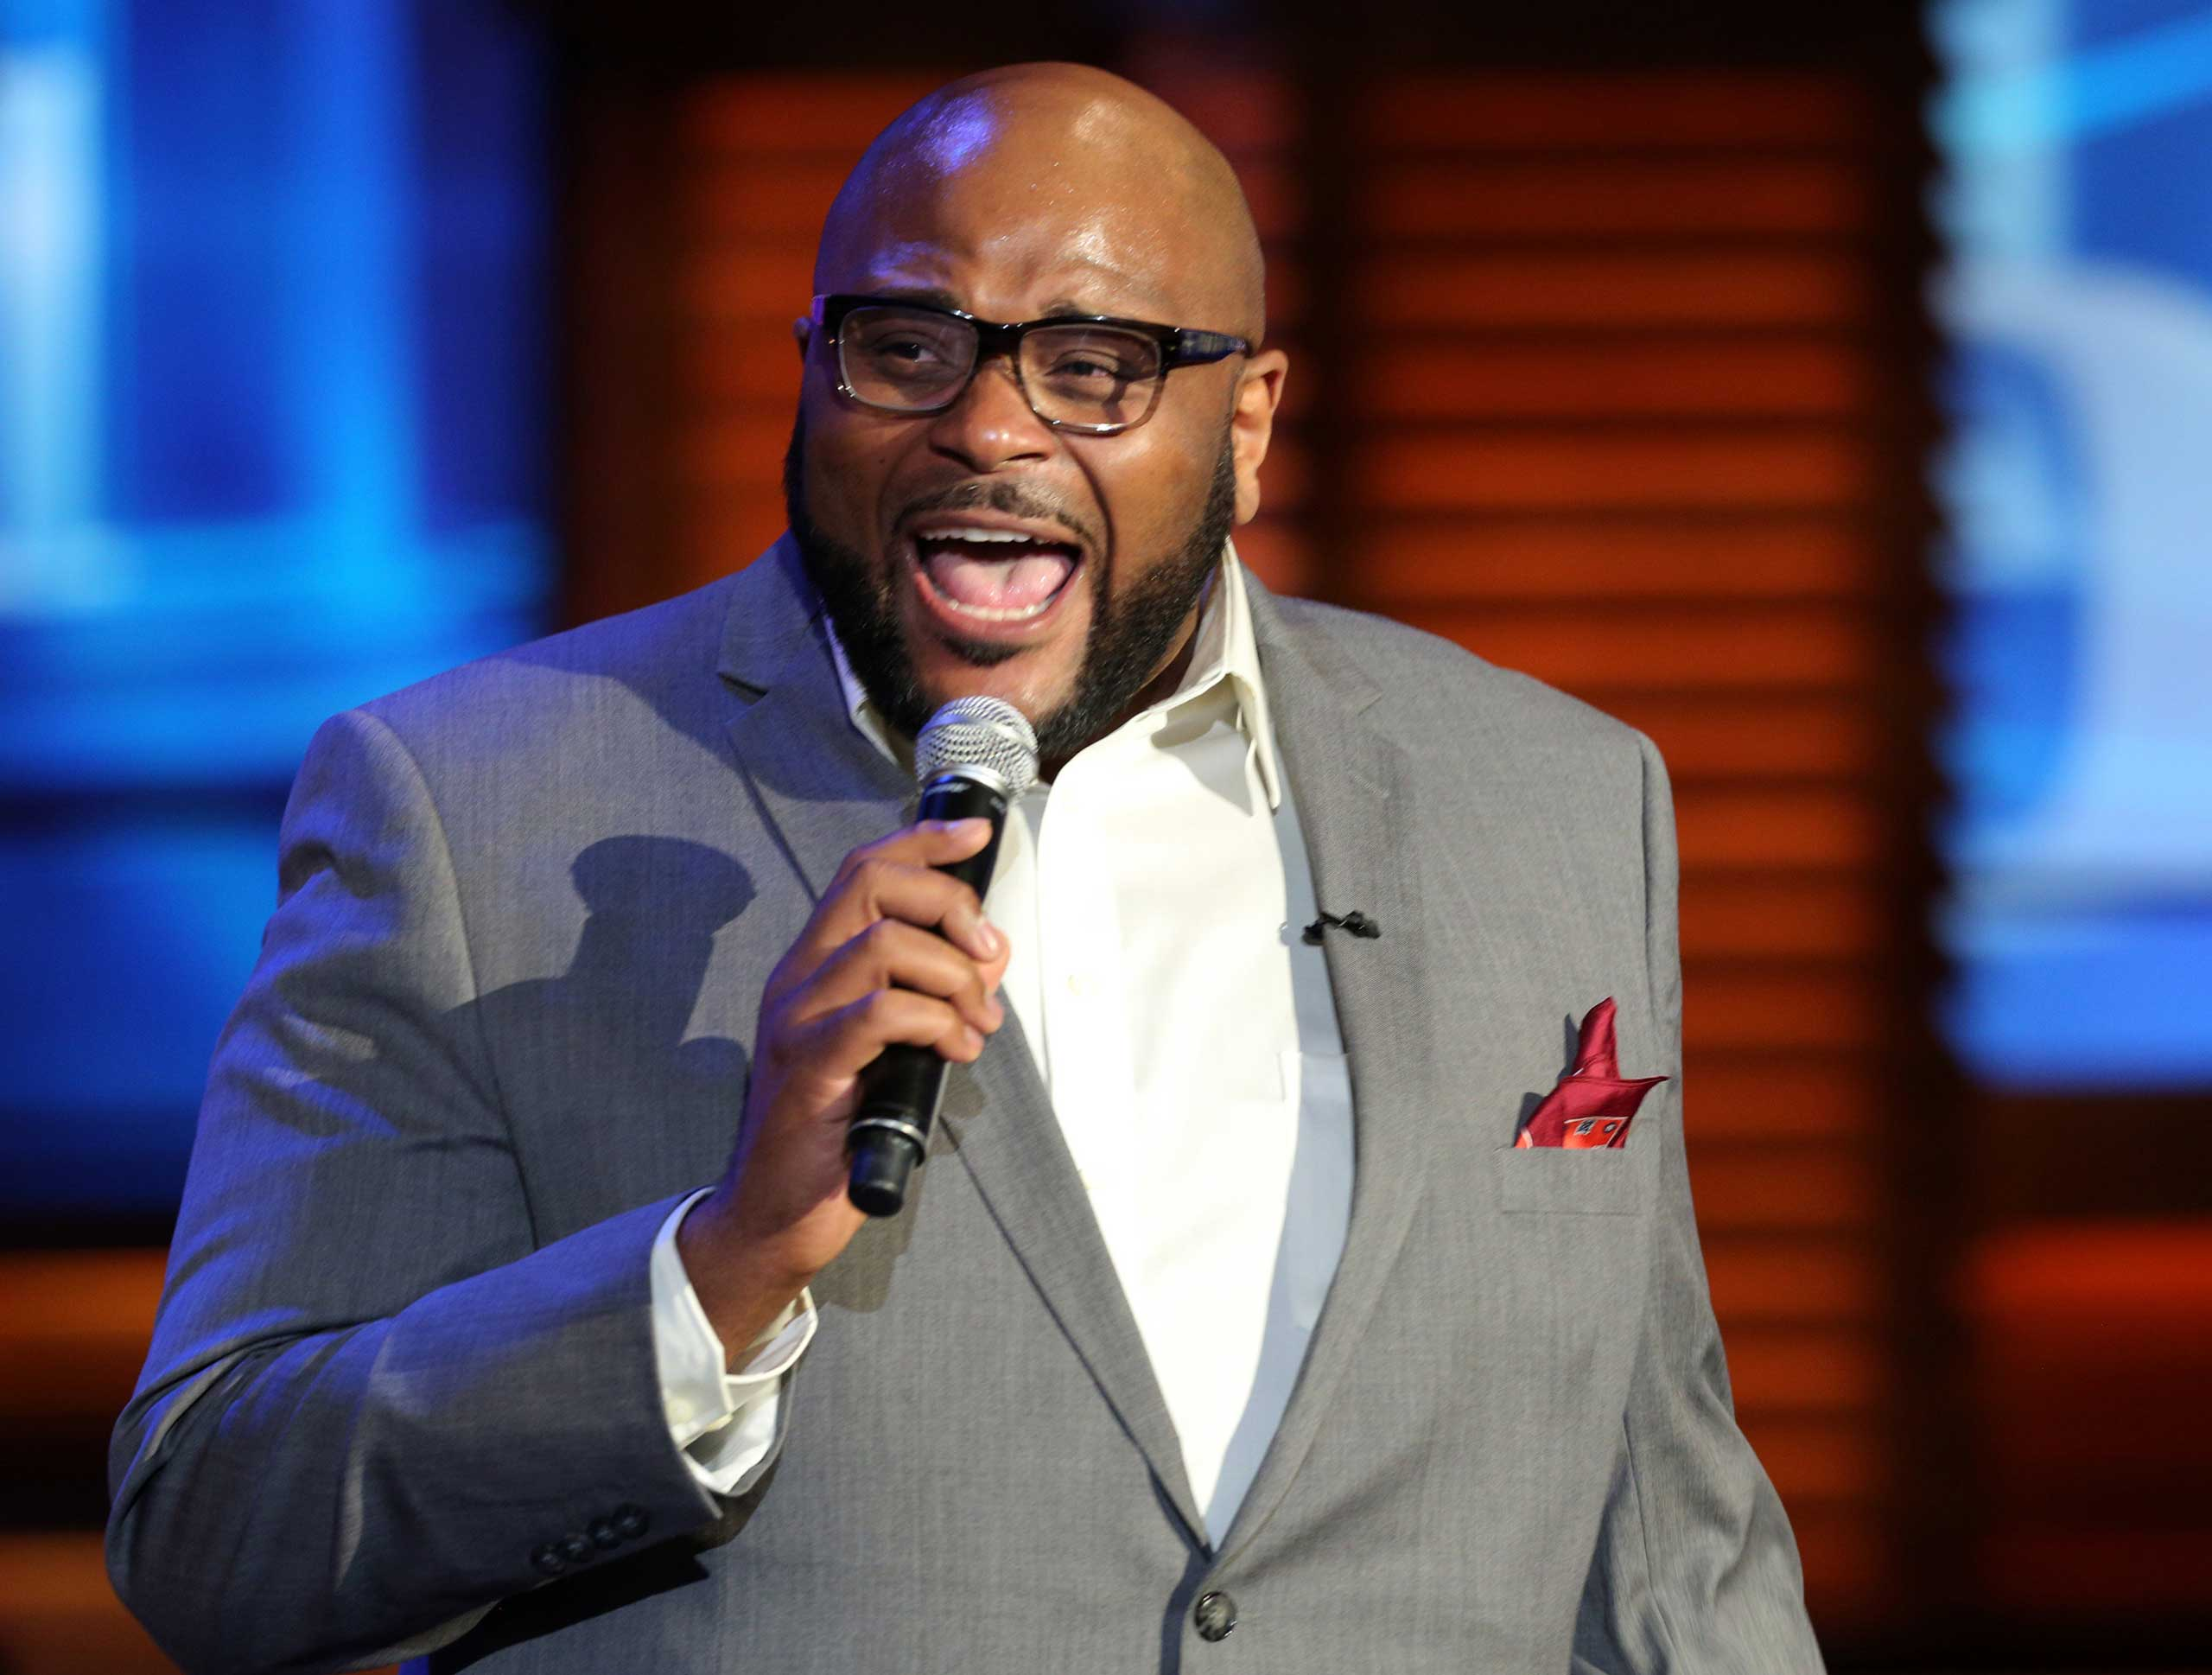 <b>Ruben Studdard</b>, season 2 winner, performs at When Georgia Smiled: The Robin McGraw Revelation Foundation And Verizon Unite For Second Annual Domestic Violence Summit at Paramount Studios in Hollywood, Calif. on Oct. 3, 2014.